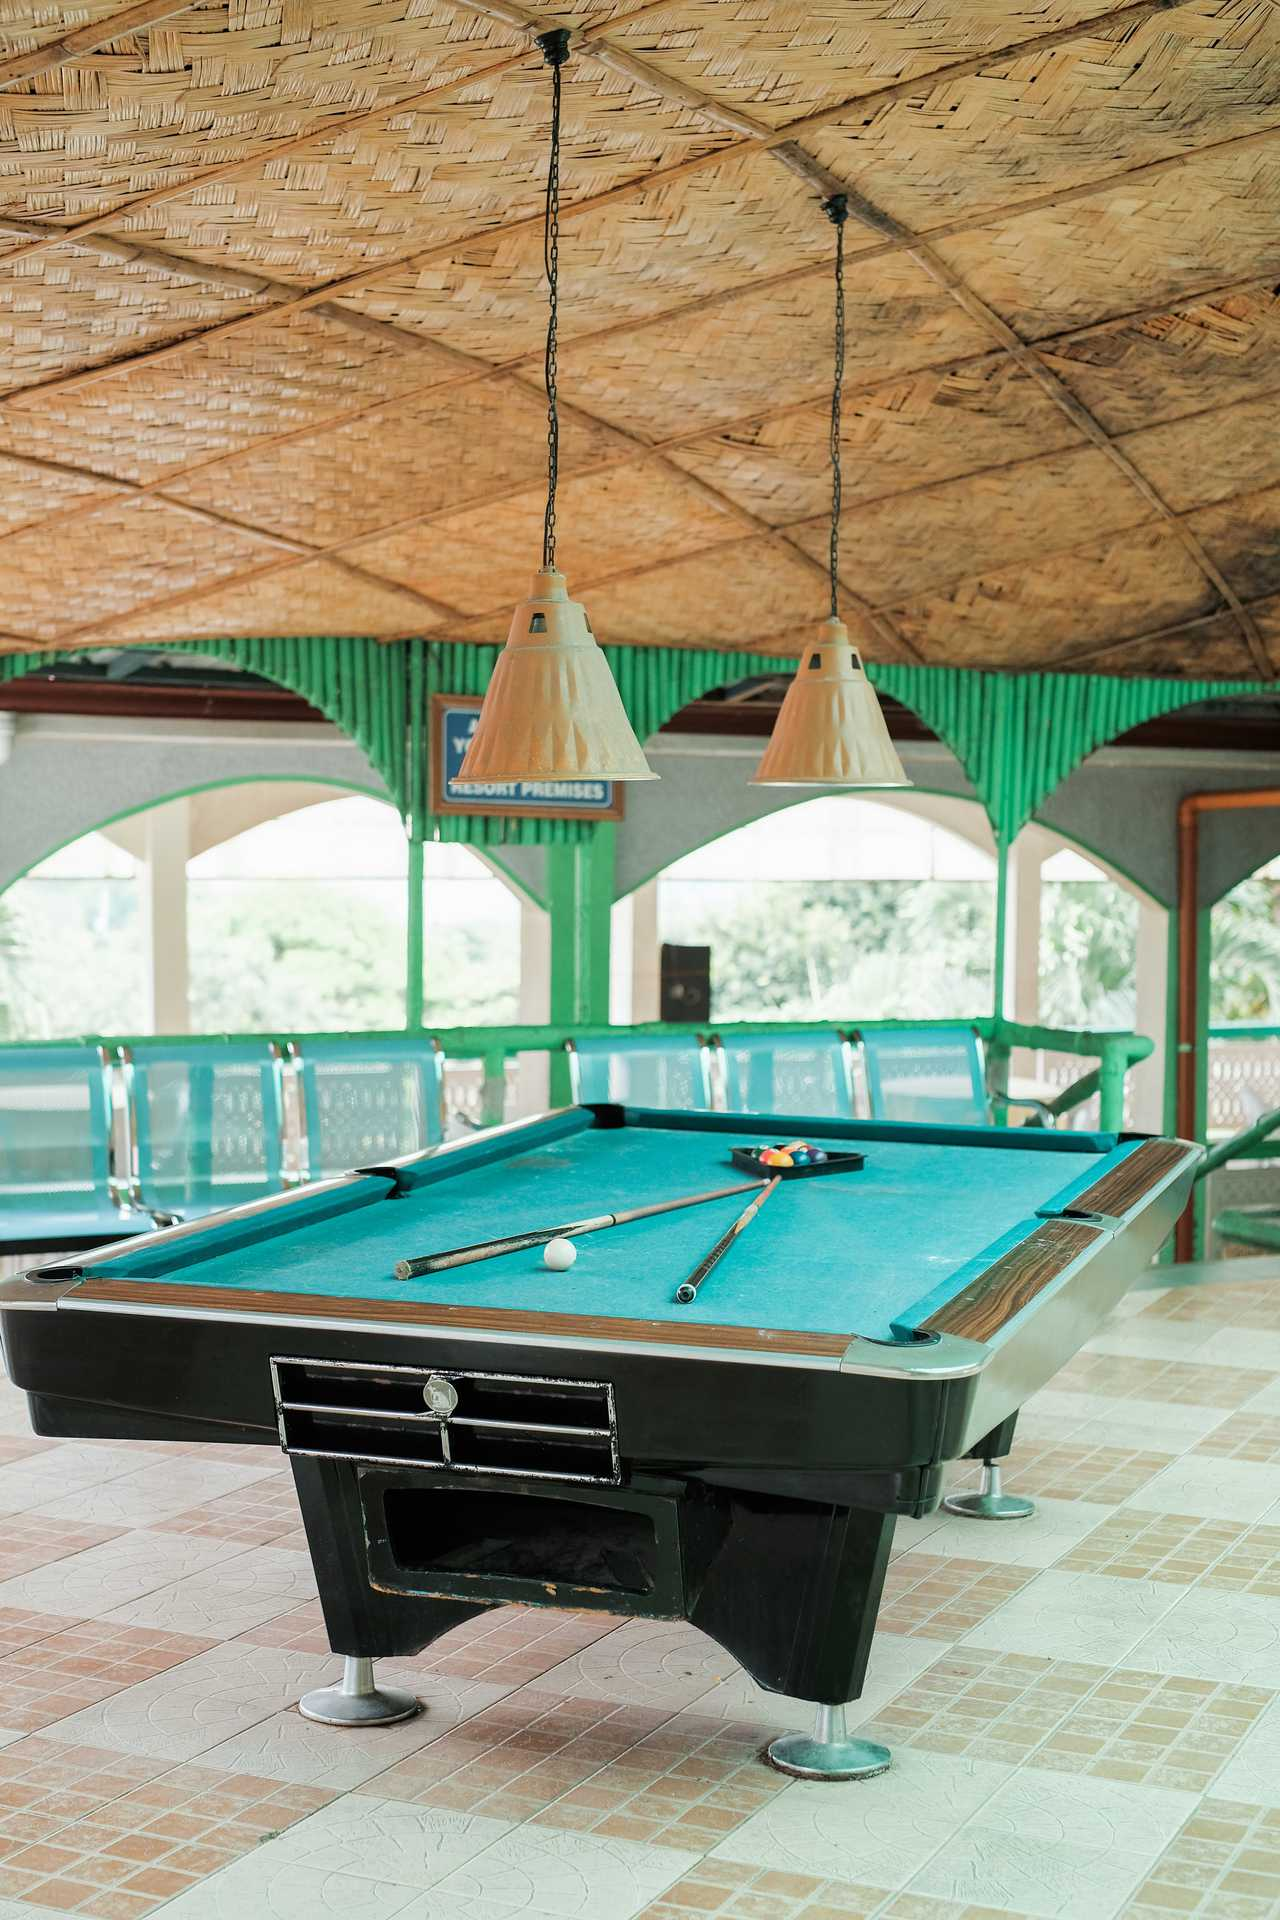 Billiard Hall with table tennis